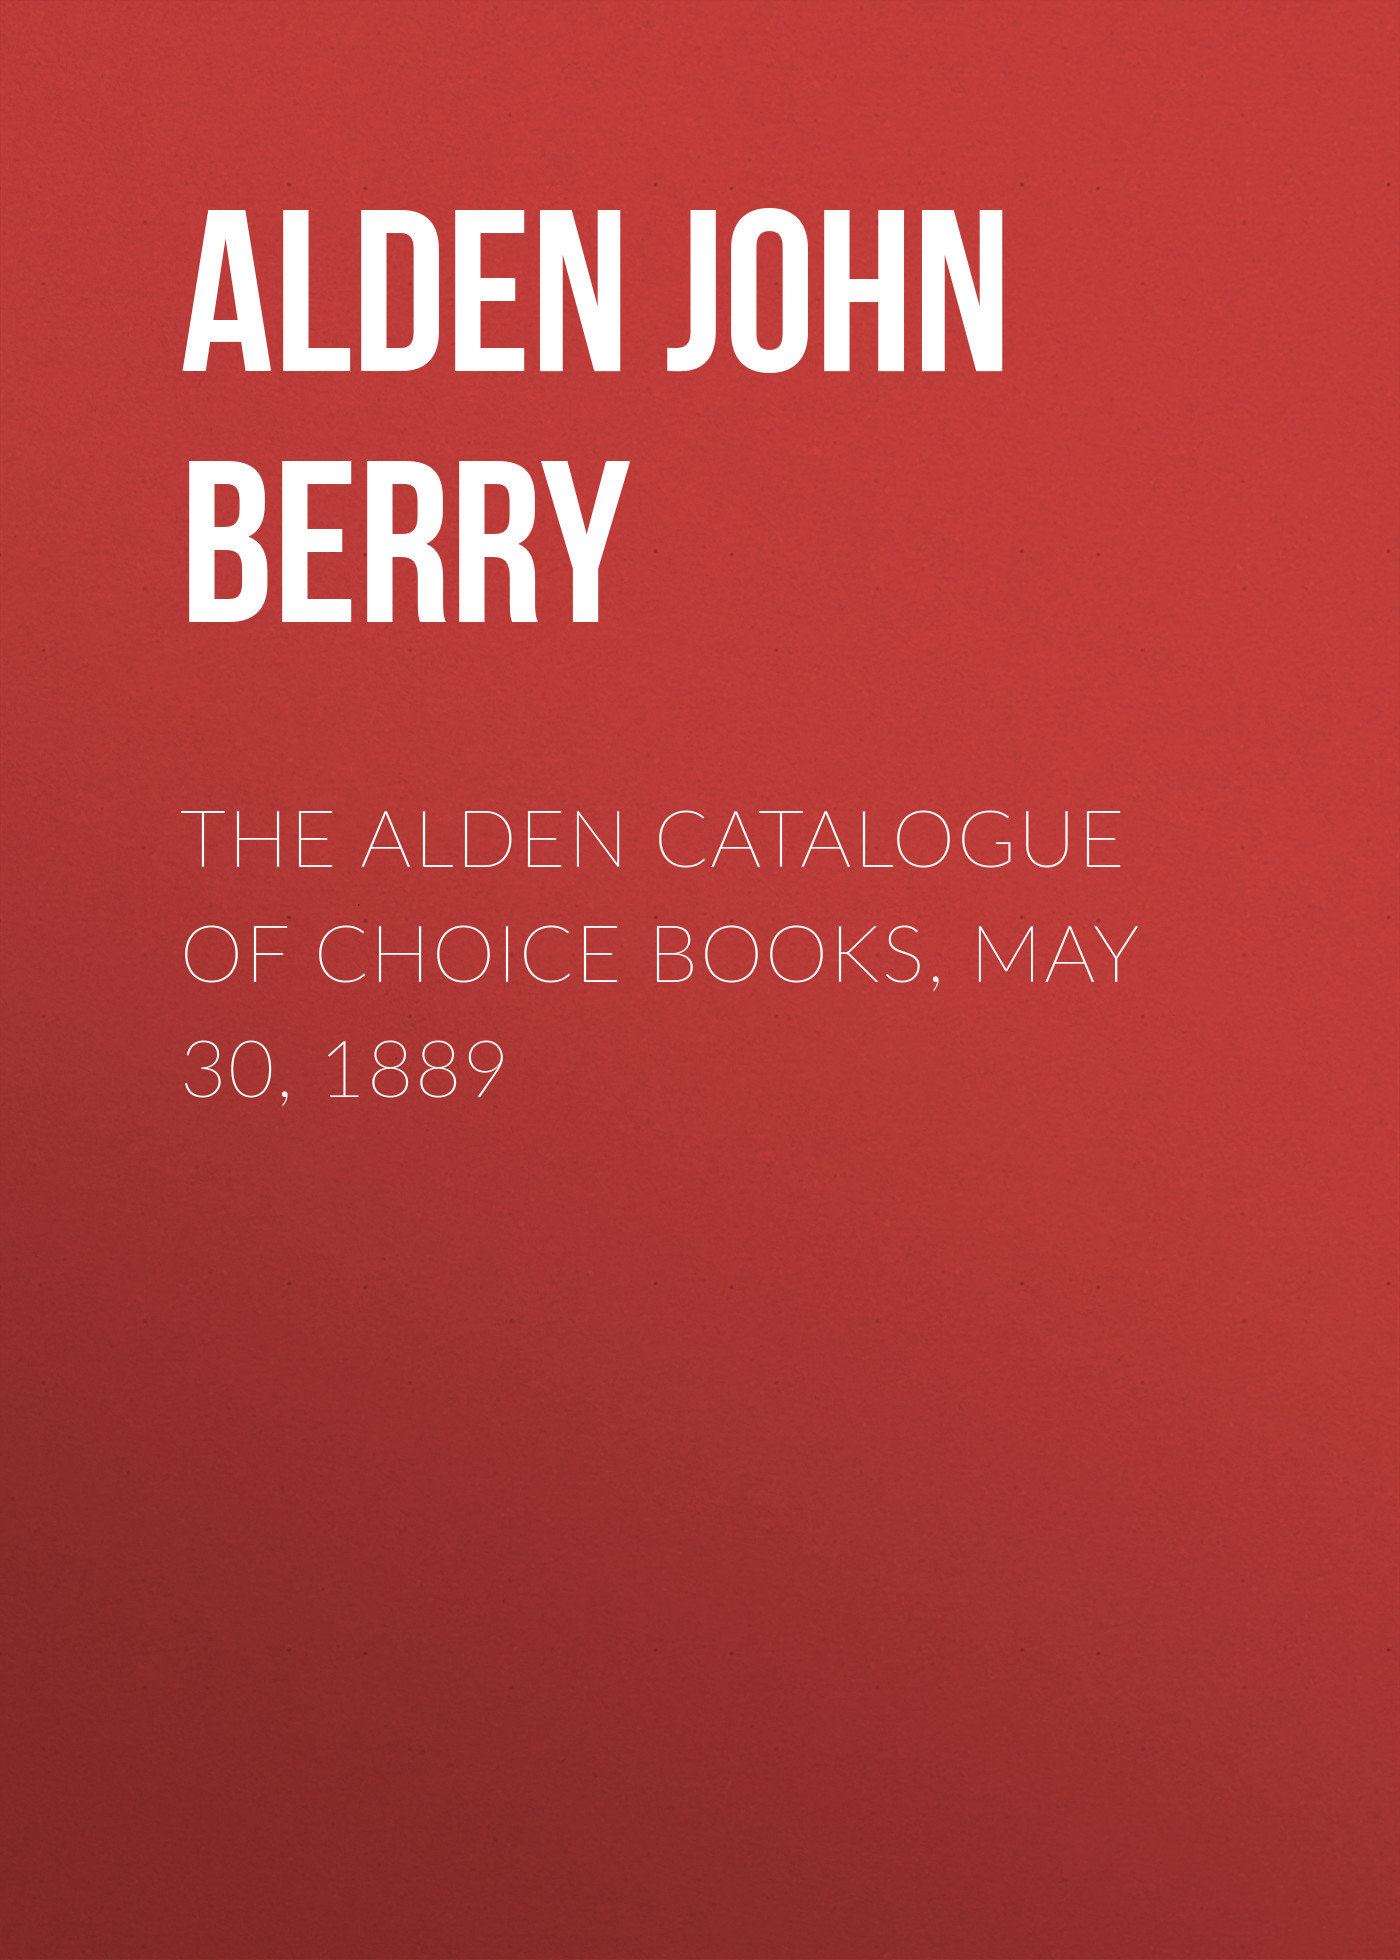 Alden John Berry The Alden Catalogue of Choice Books, May 30, 1889